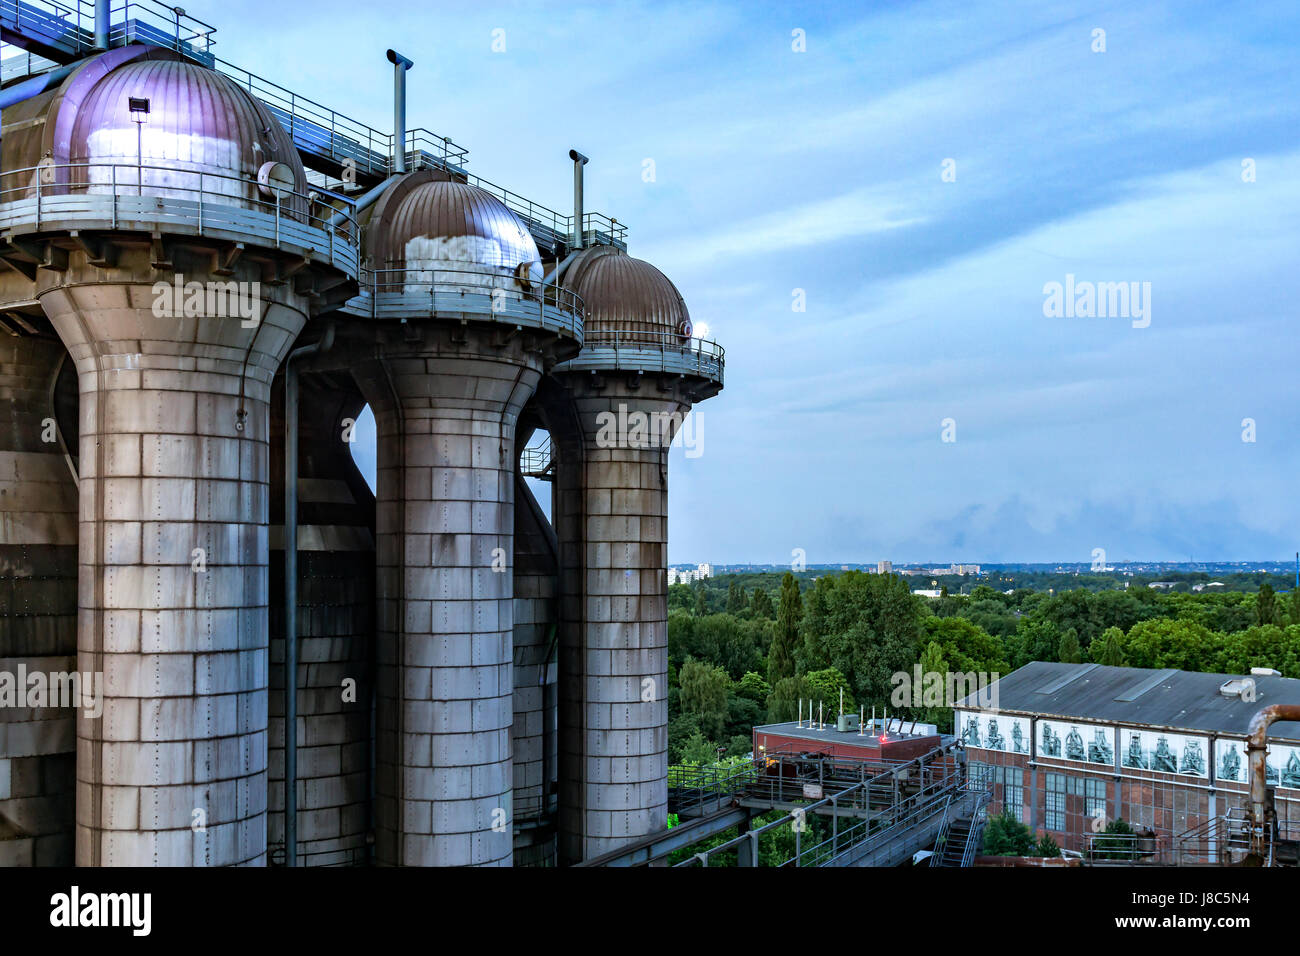 Essen Zollverein industrial monument Unesco world heritage. The picture shows a coke oven plant tower. - Stock Image